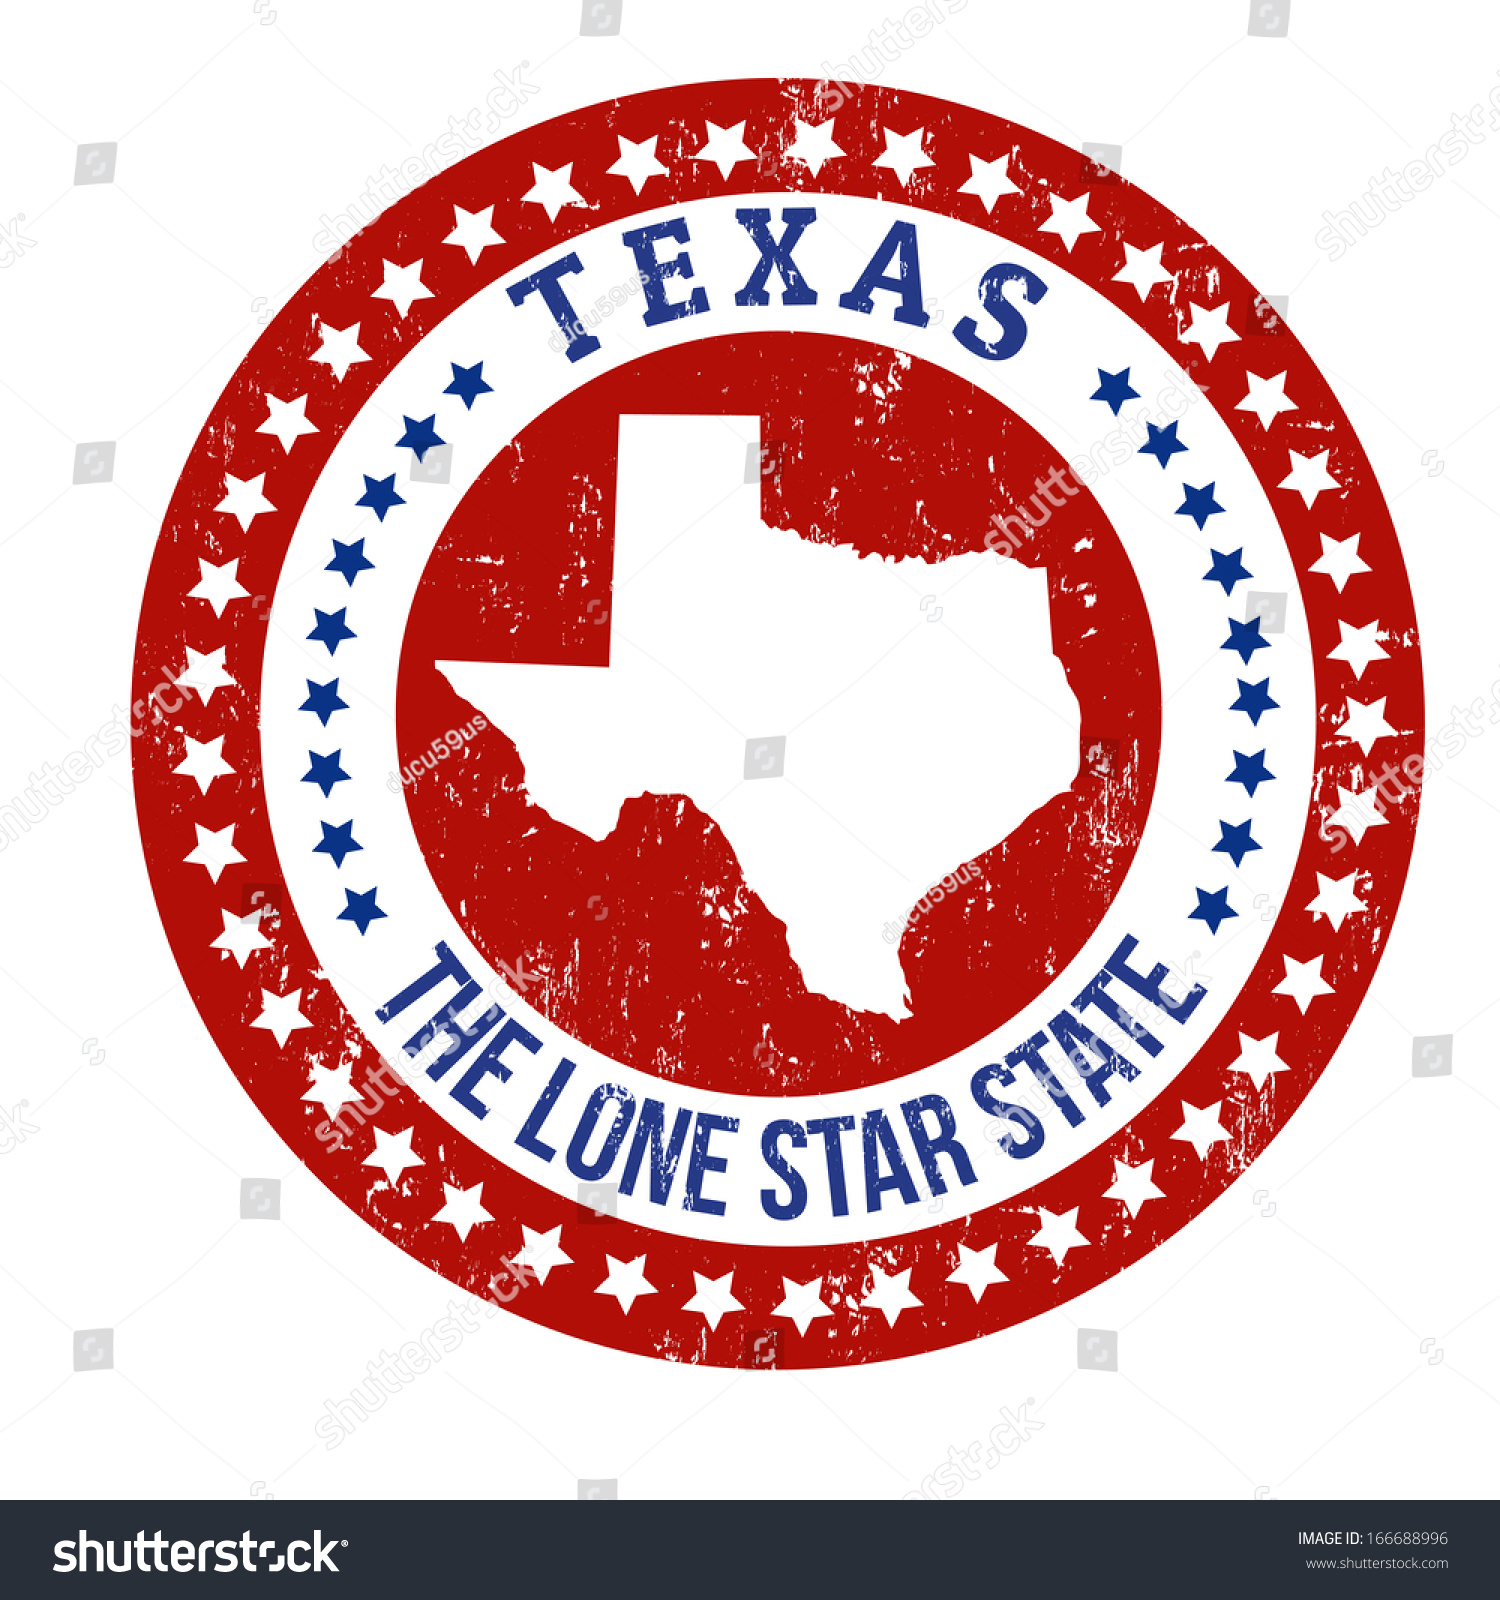 Vintage Stamp Text Lone Star State Stock Vector Royalty Free